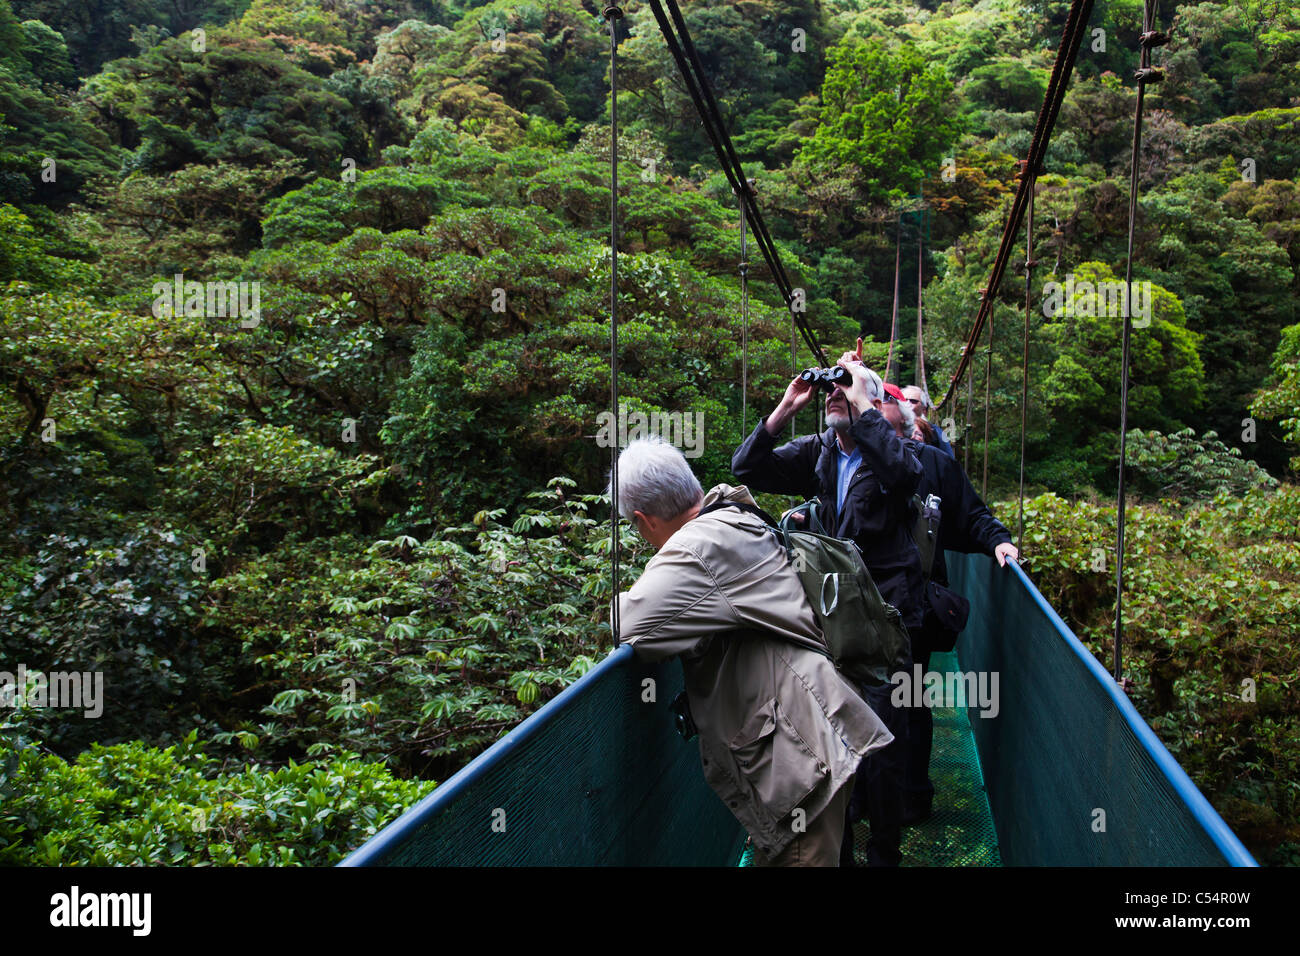 Ecotourism hanging bridge canopy walkway in tropical jungle and rainforest - Stock Image